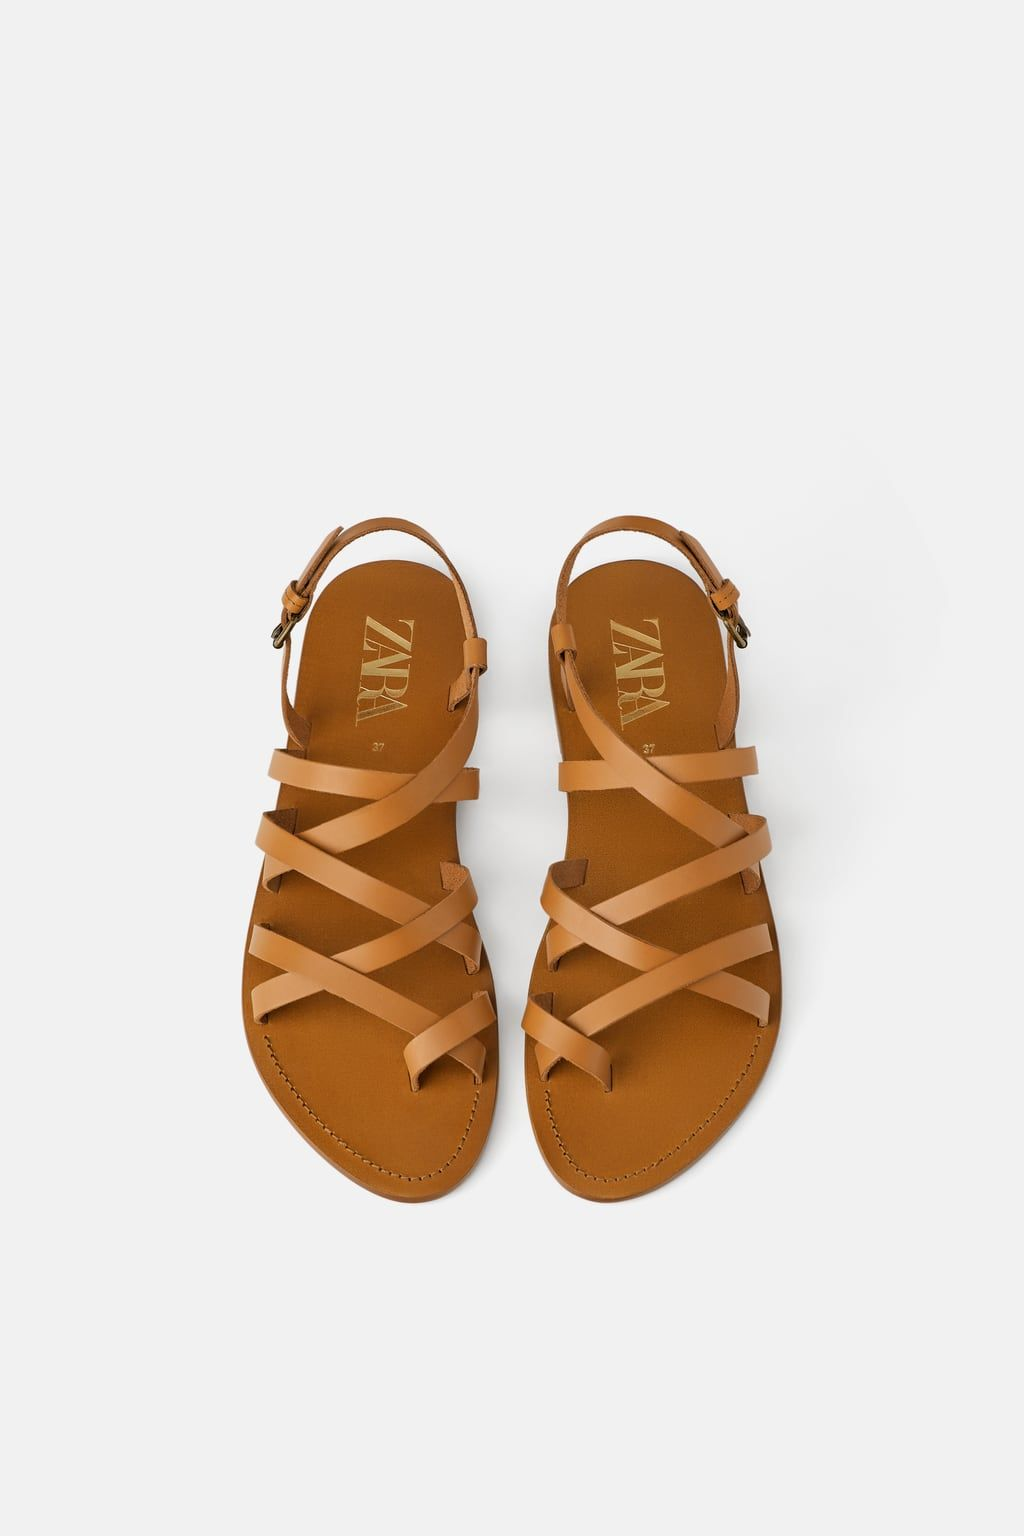 744d8ec0a23ea LOW-HEELED STRAPPY LEATHER SANDALS-Flat Sandals-SHOES-WOMAN | ZARA United  States